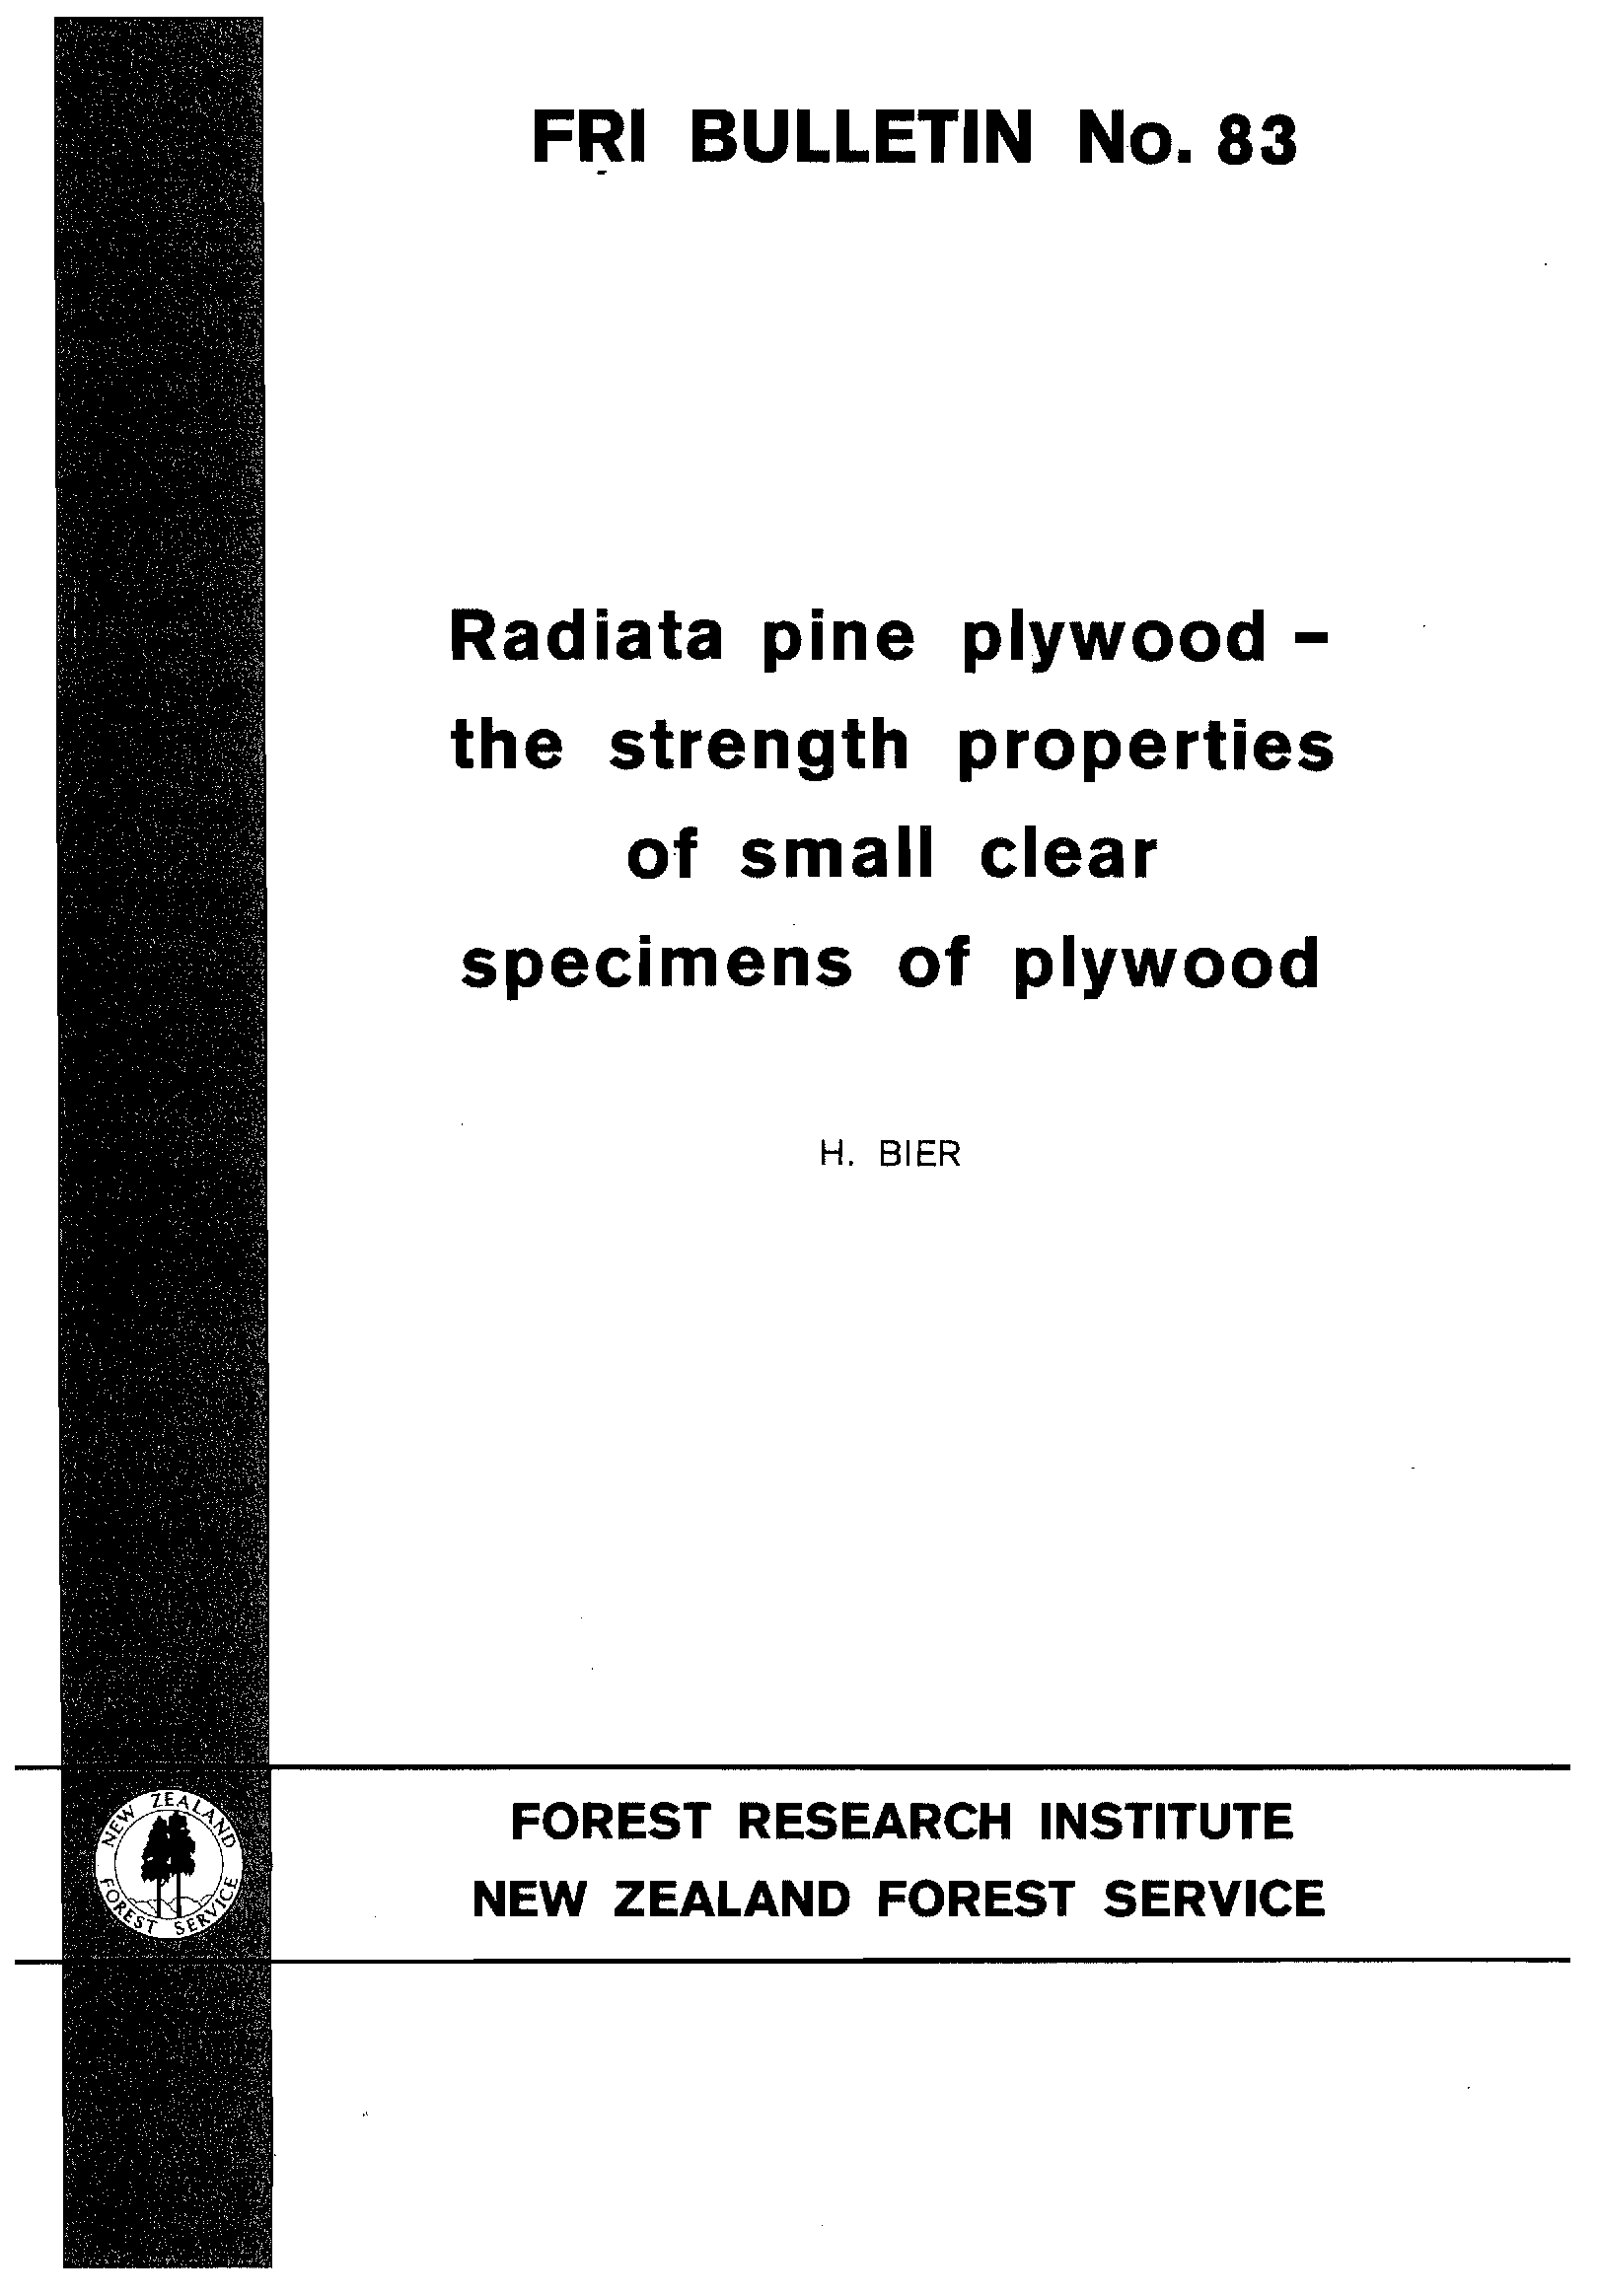 Radiata pine plywood - the strength properties of small clear